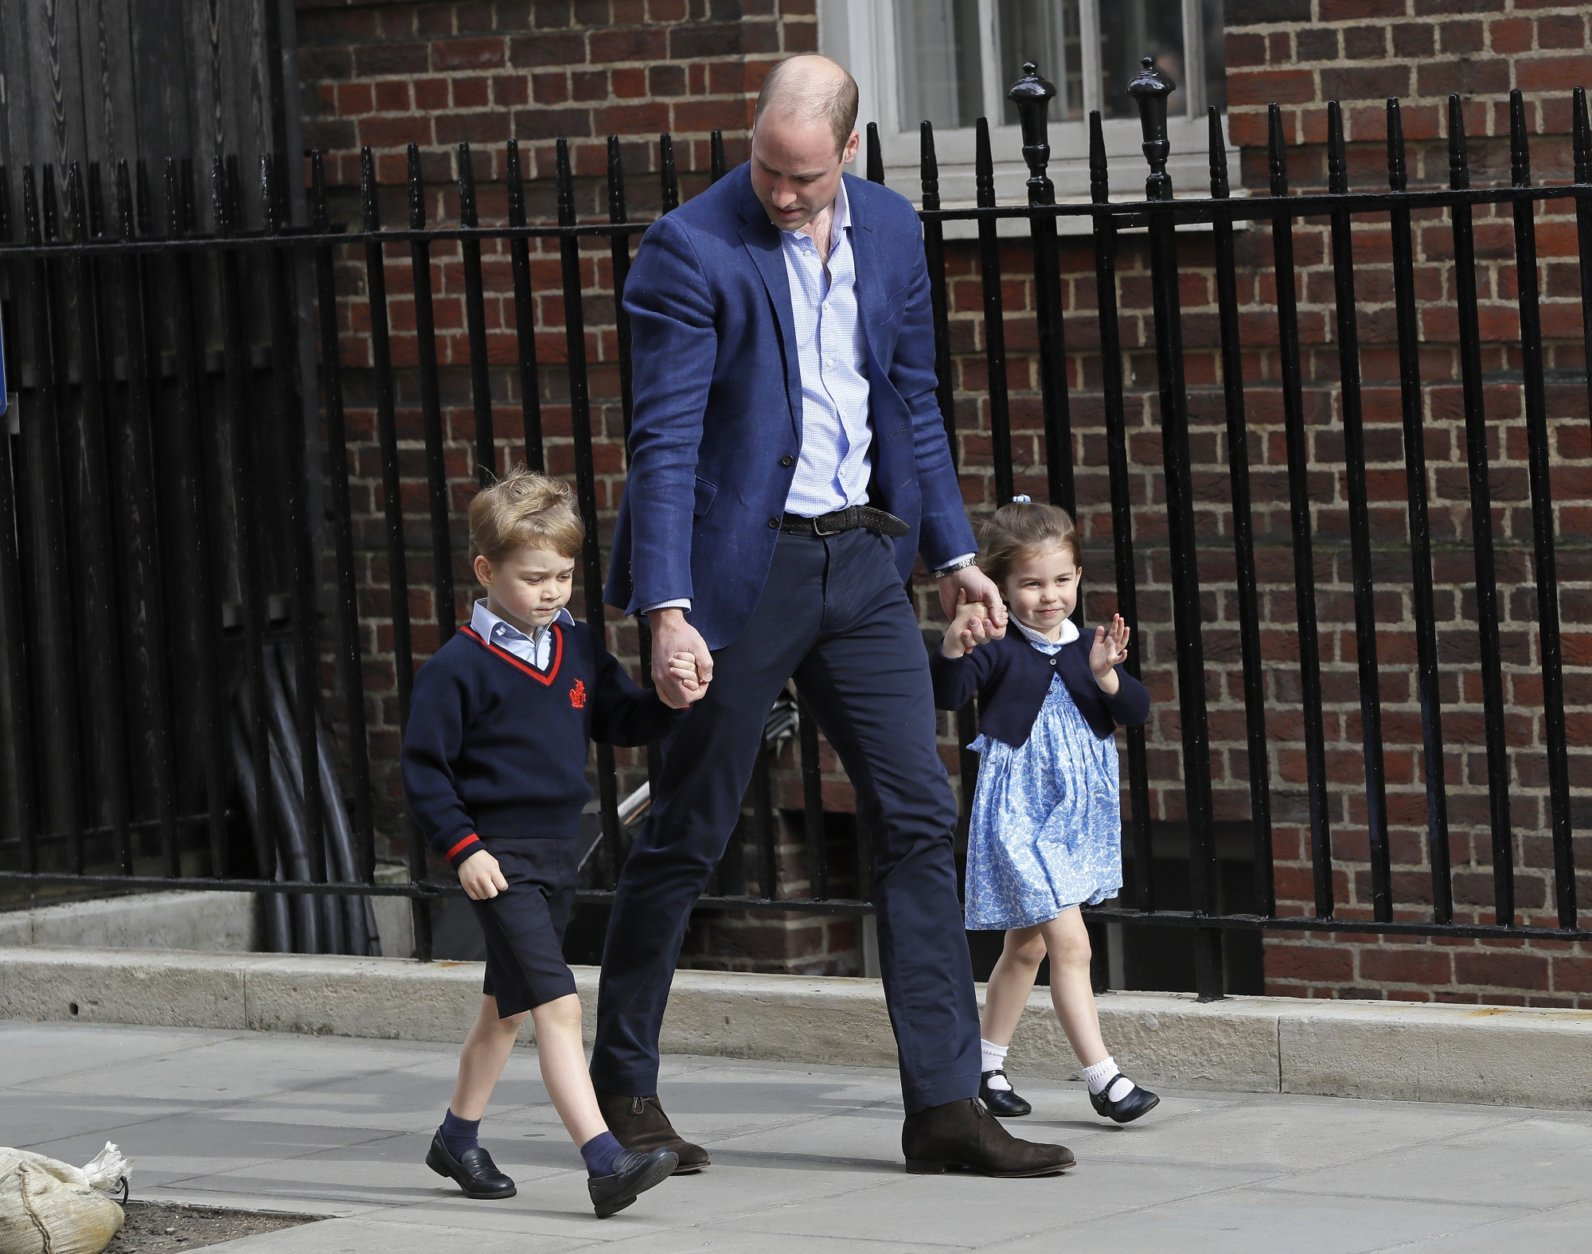 Britain's Prince William arrives with Prince George and Princess Charlotte back to the Lindo wing at St Mary's Hospital in London London, Monday, April 23, 2018. The Duchess of Cambridge gave birth Monday to a healthy baby boy — a third child for Kate and Prince William and fifth in line to the British throne. (AP Photo/Kirsty Wigglesworth)